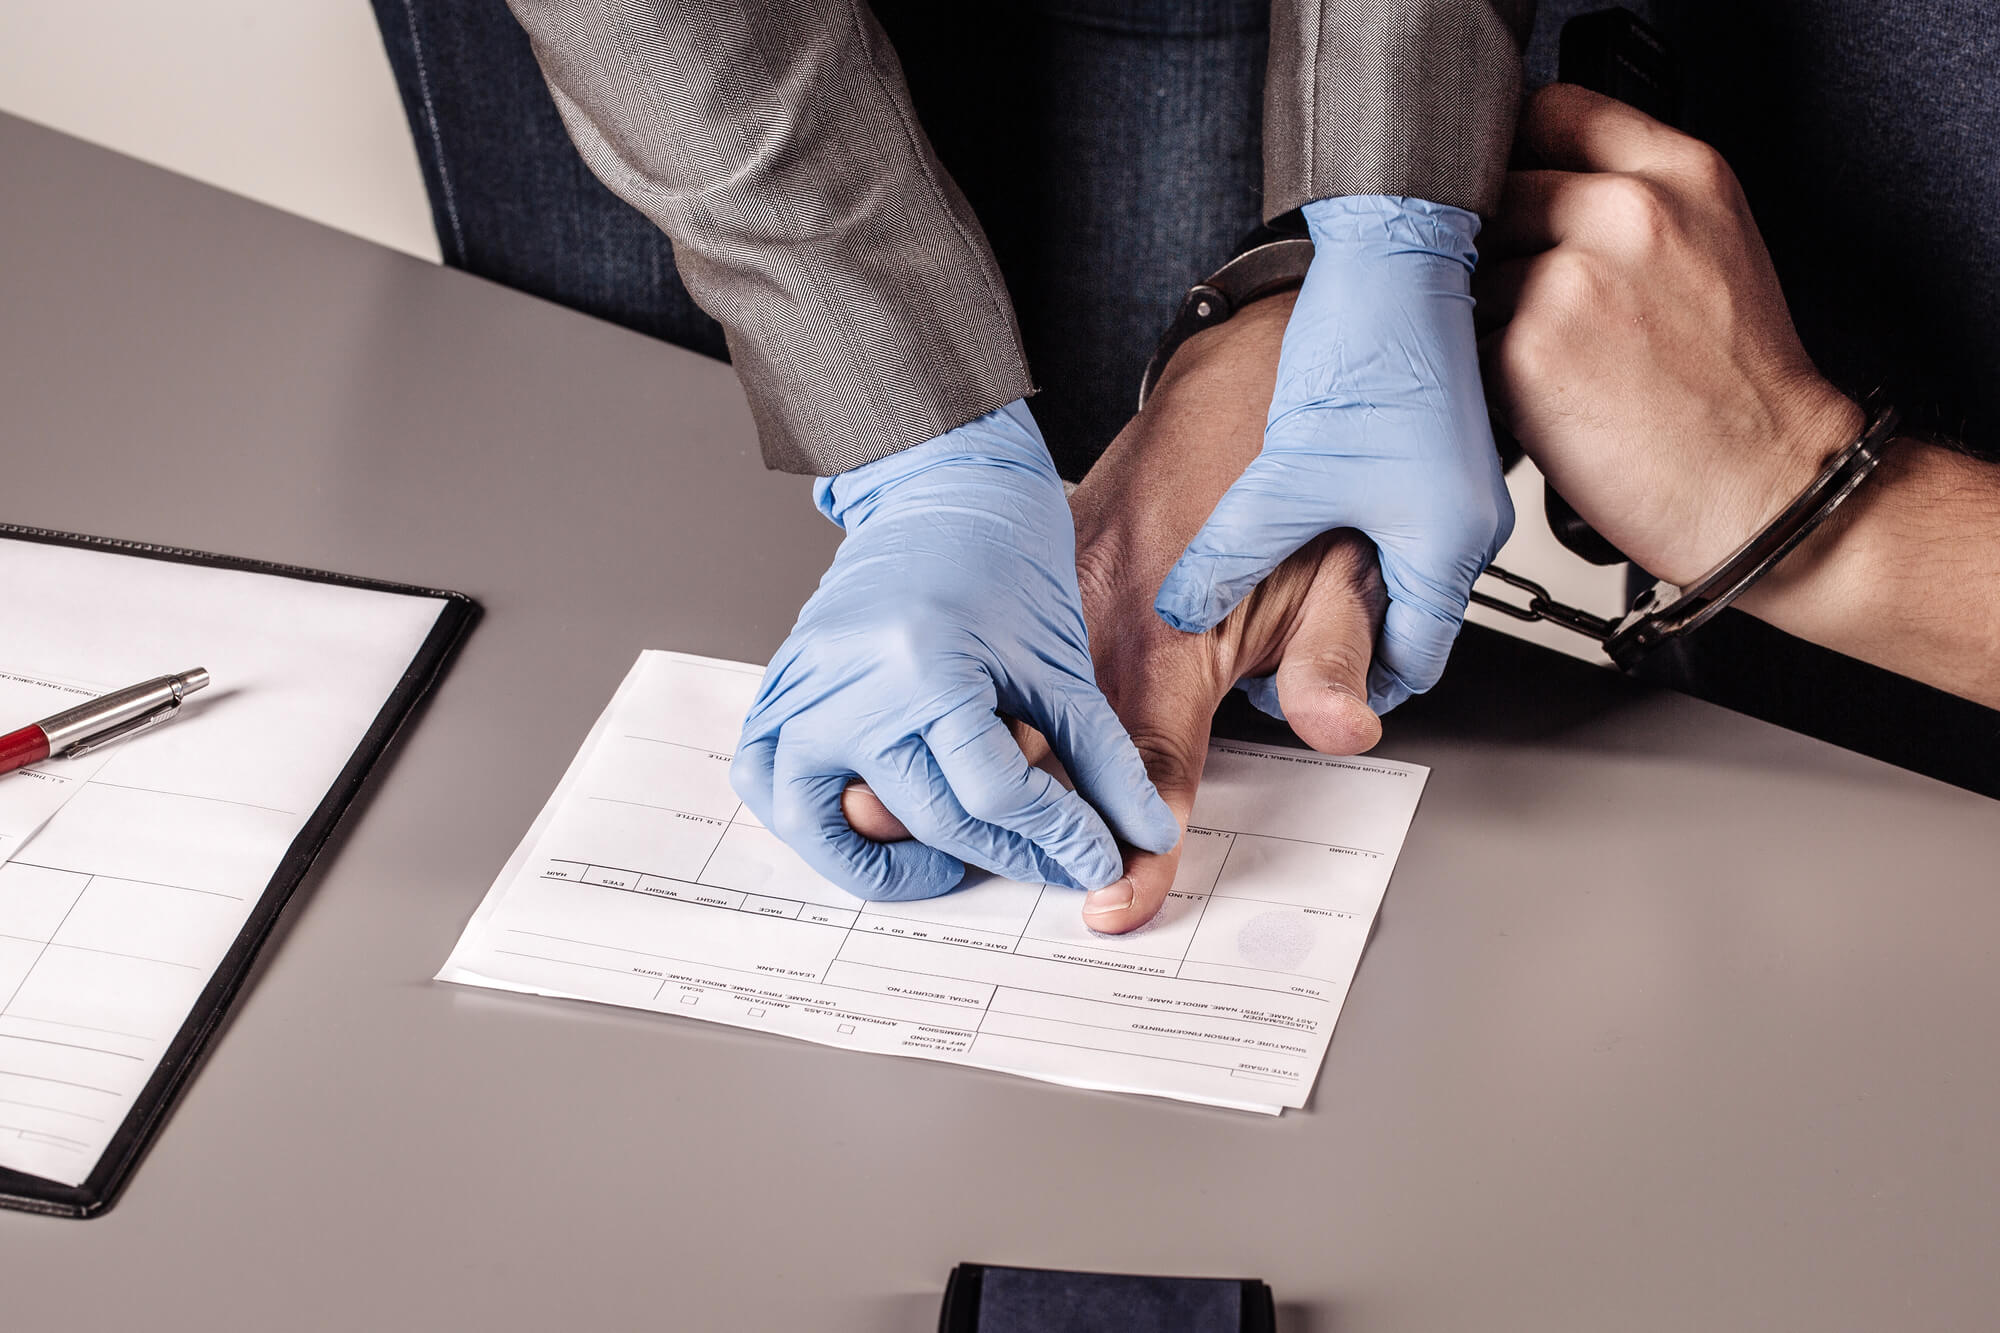 what can a retail theft attorney west palm beach do for me?